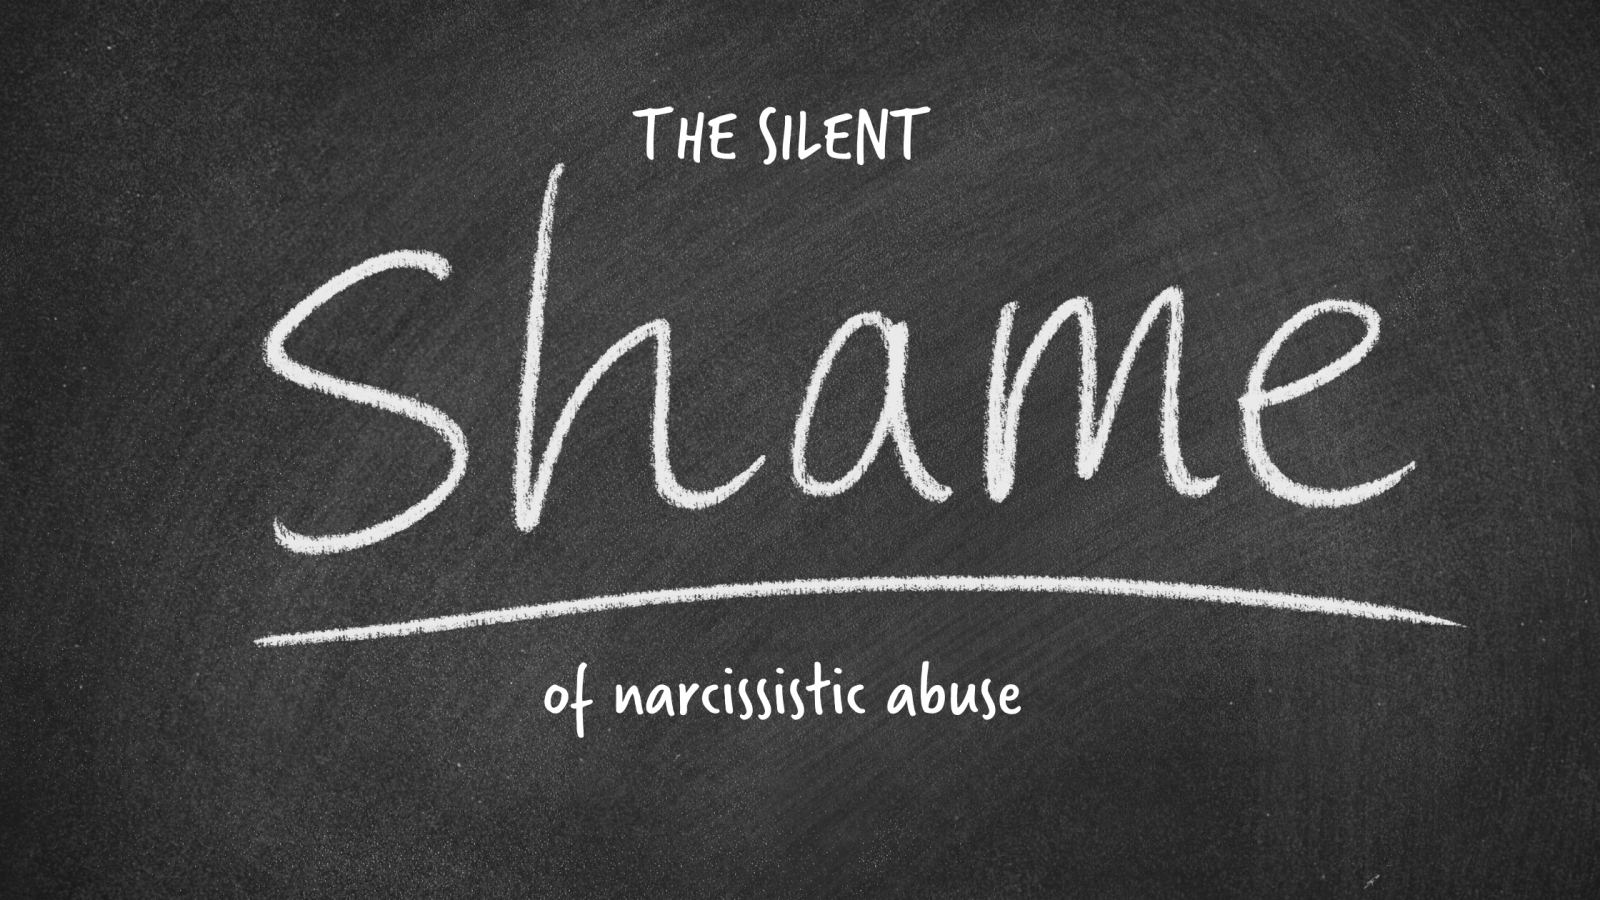 THE SILENT SHAME OF NARCISSISTIC ABUSE